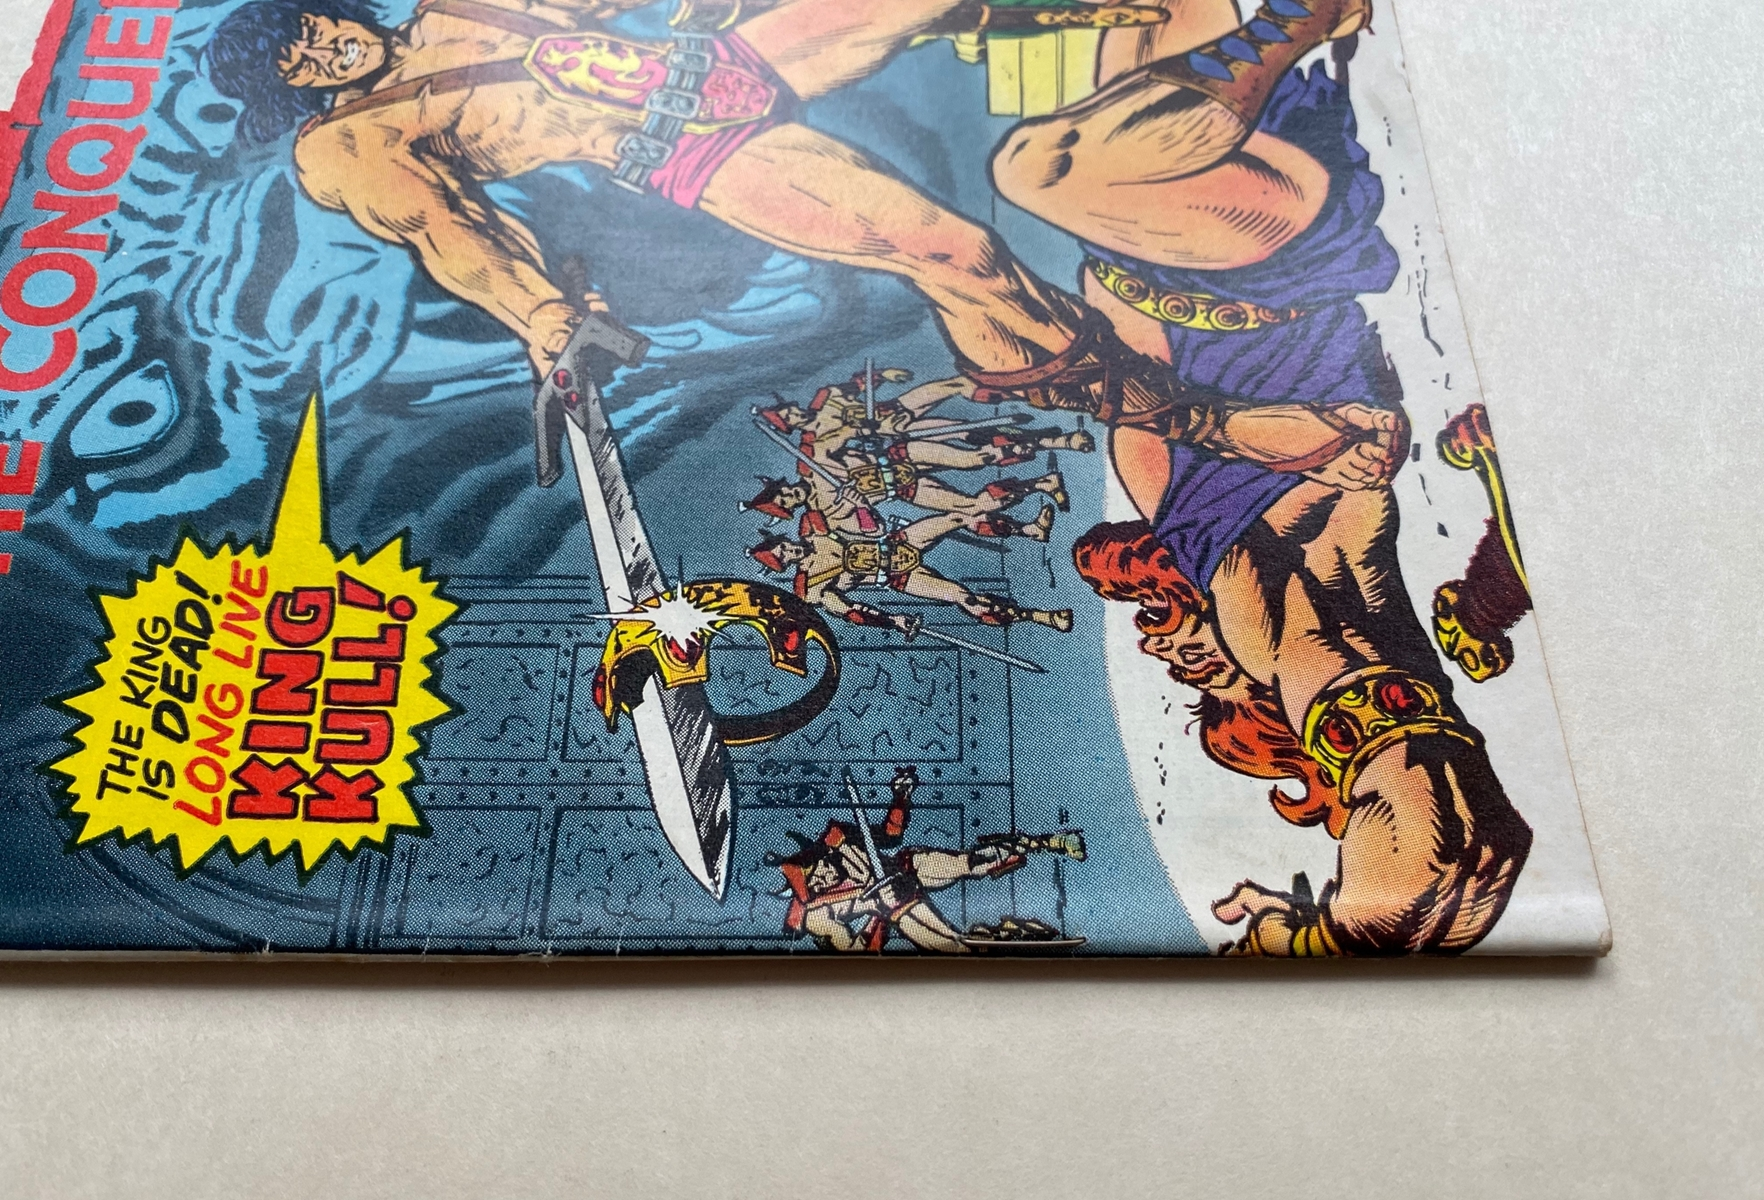 Lot 2014 - KULL THE CONQUEROR #1 - (1971 - MARVEL - Cents Copy/Pence Stamp - VFN) - Origin and second